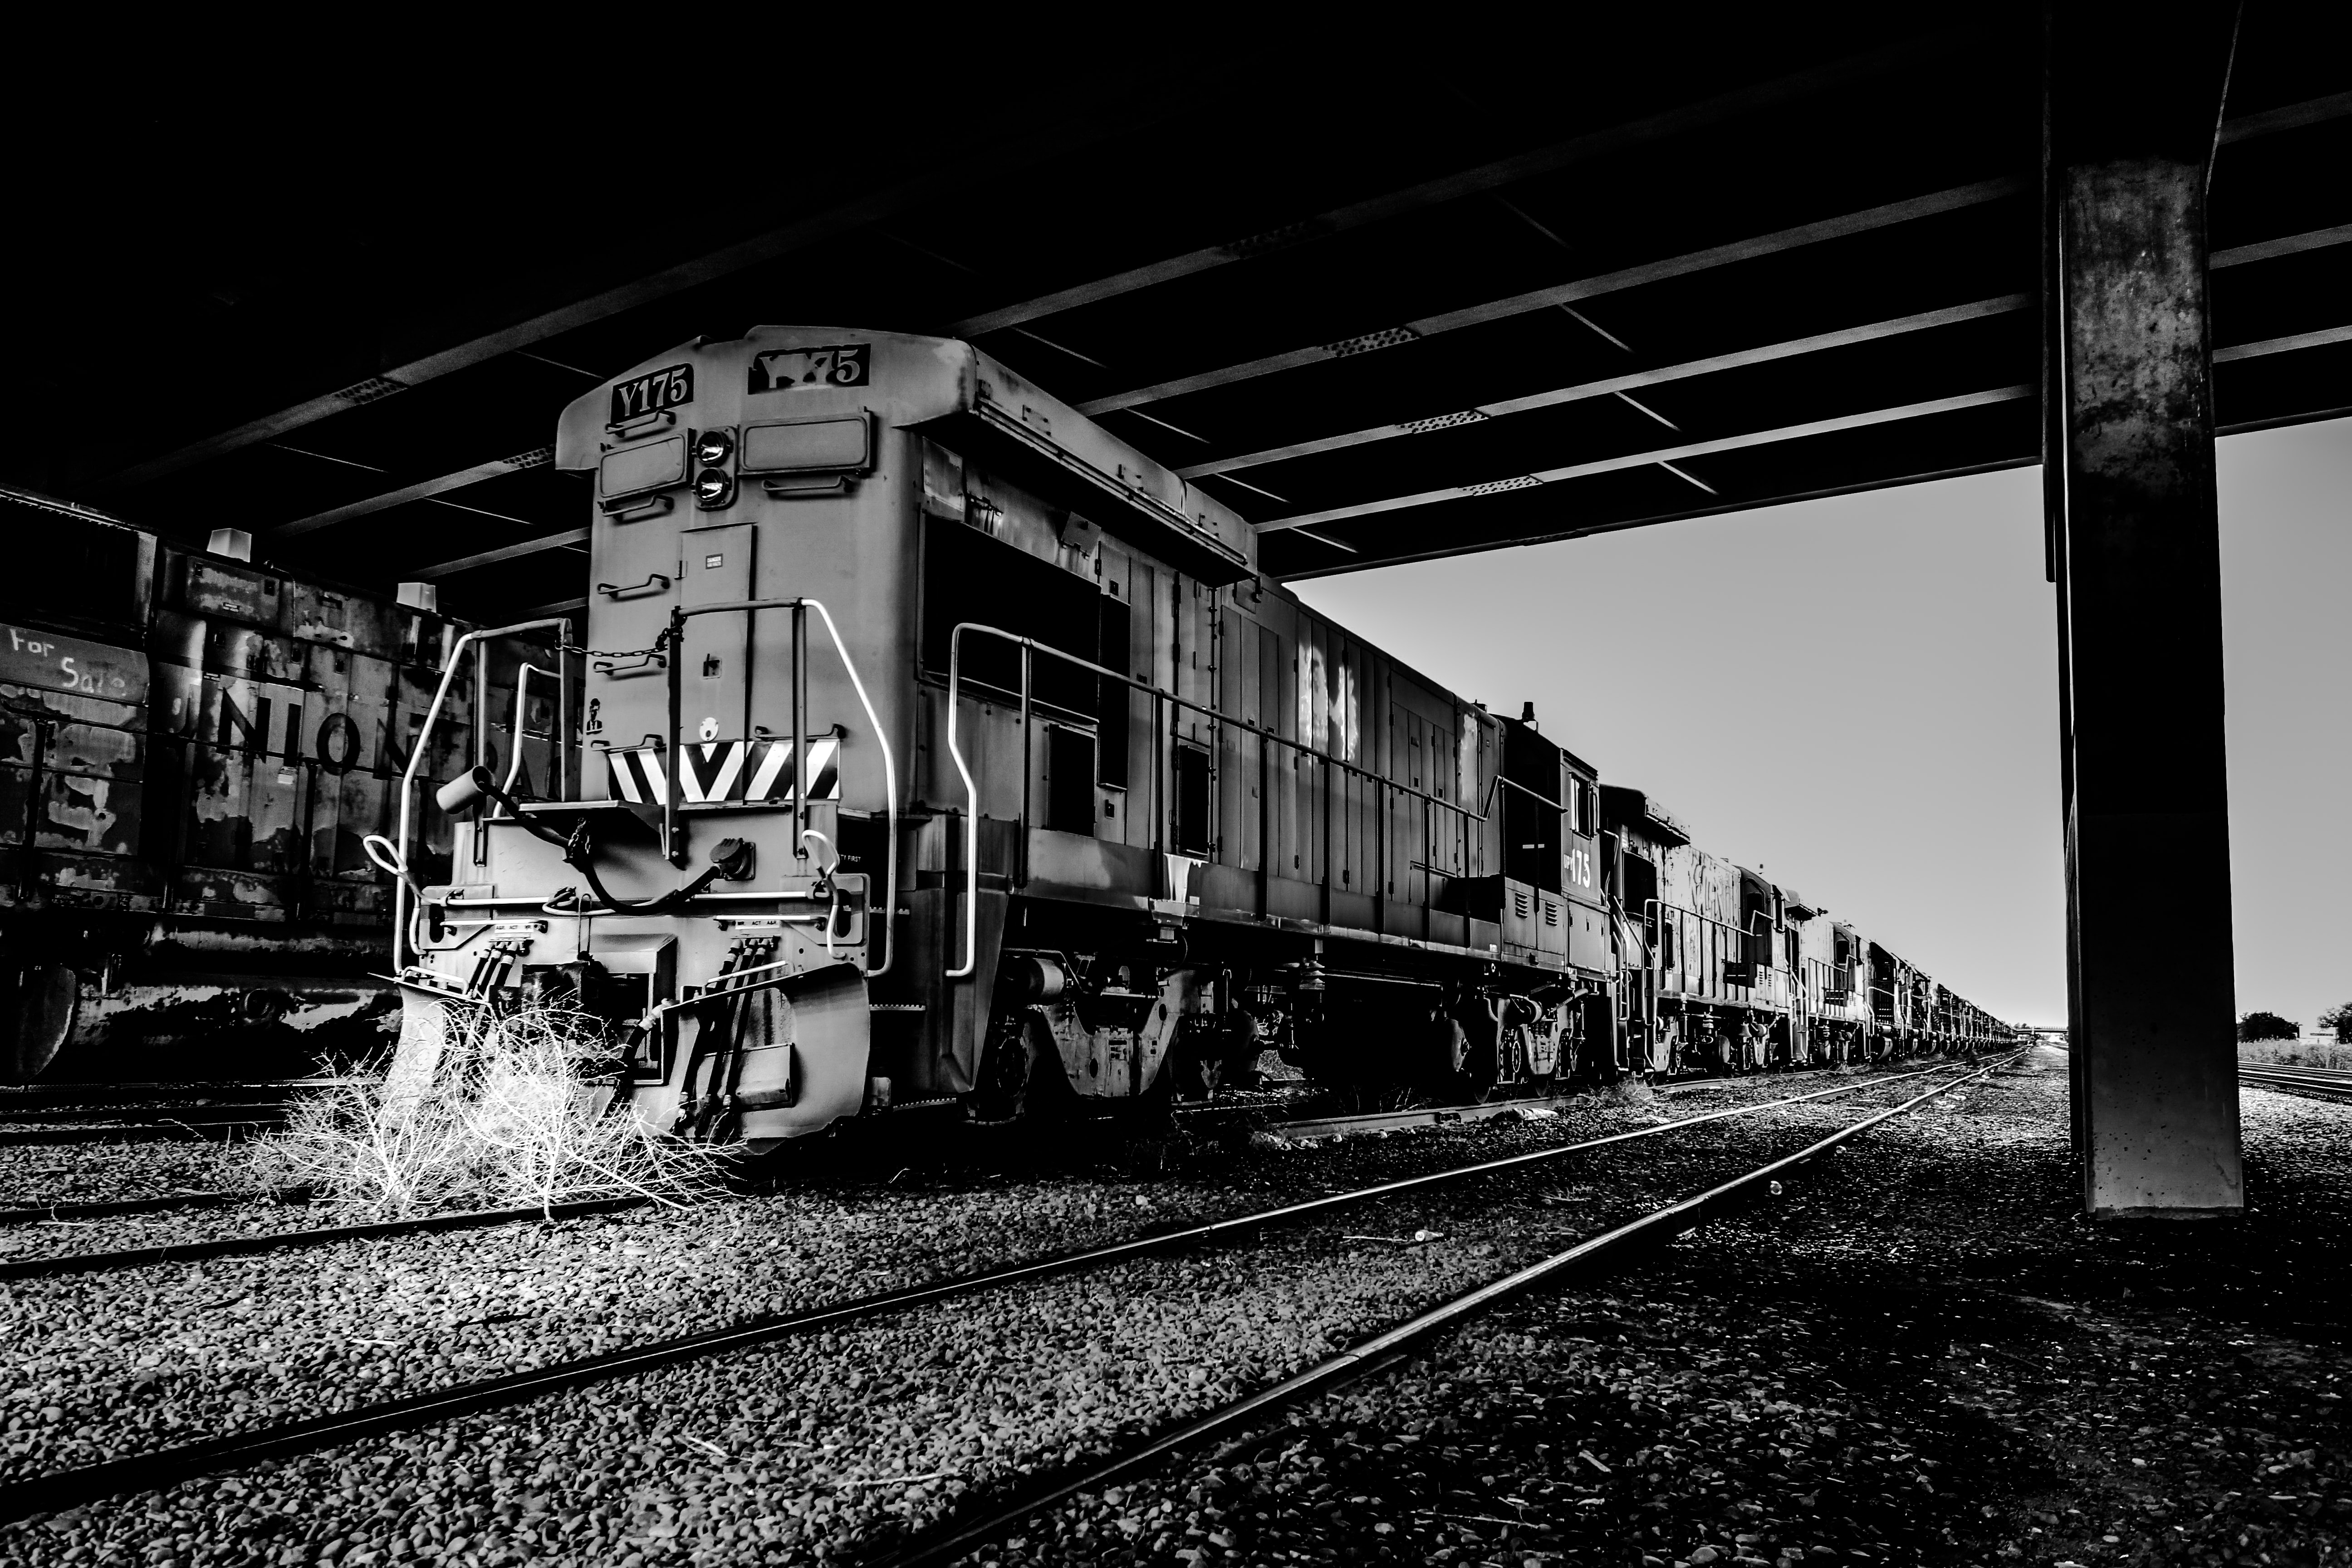 grayscale photography of train on station